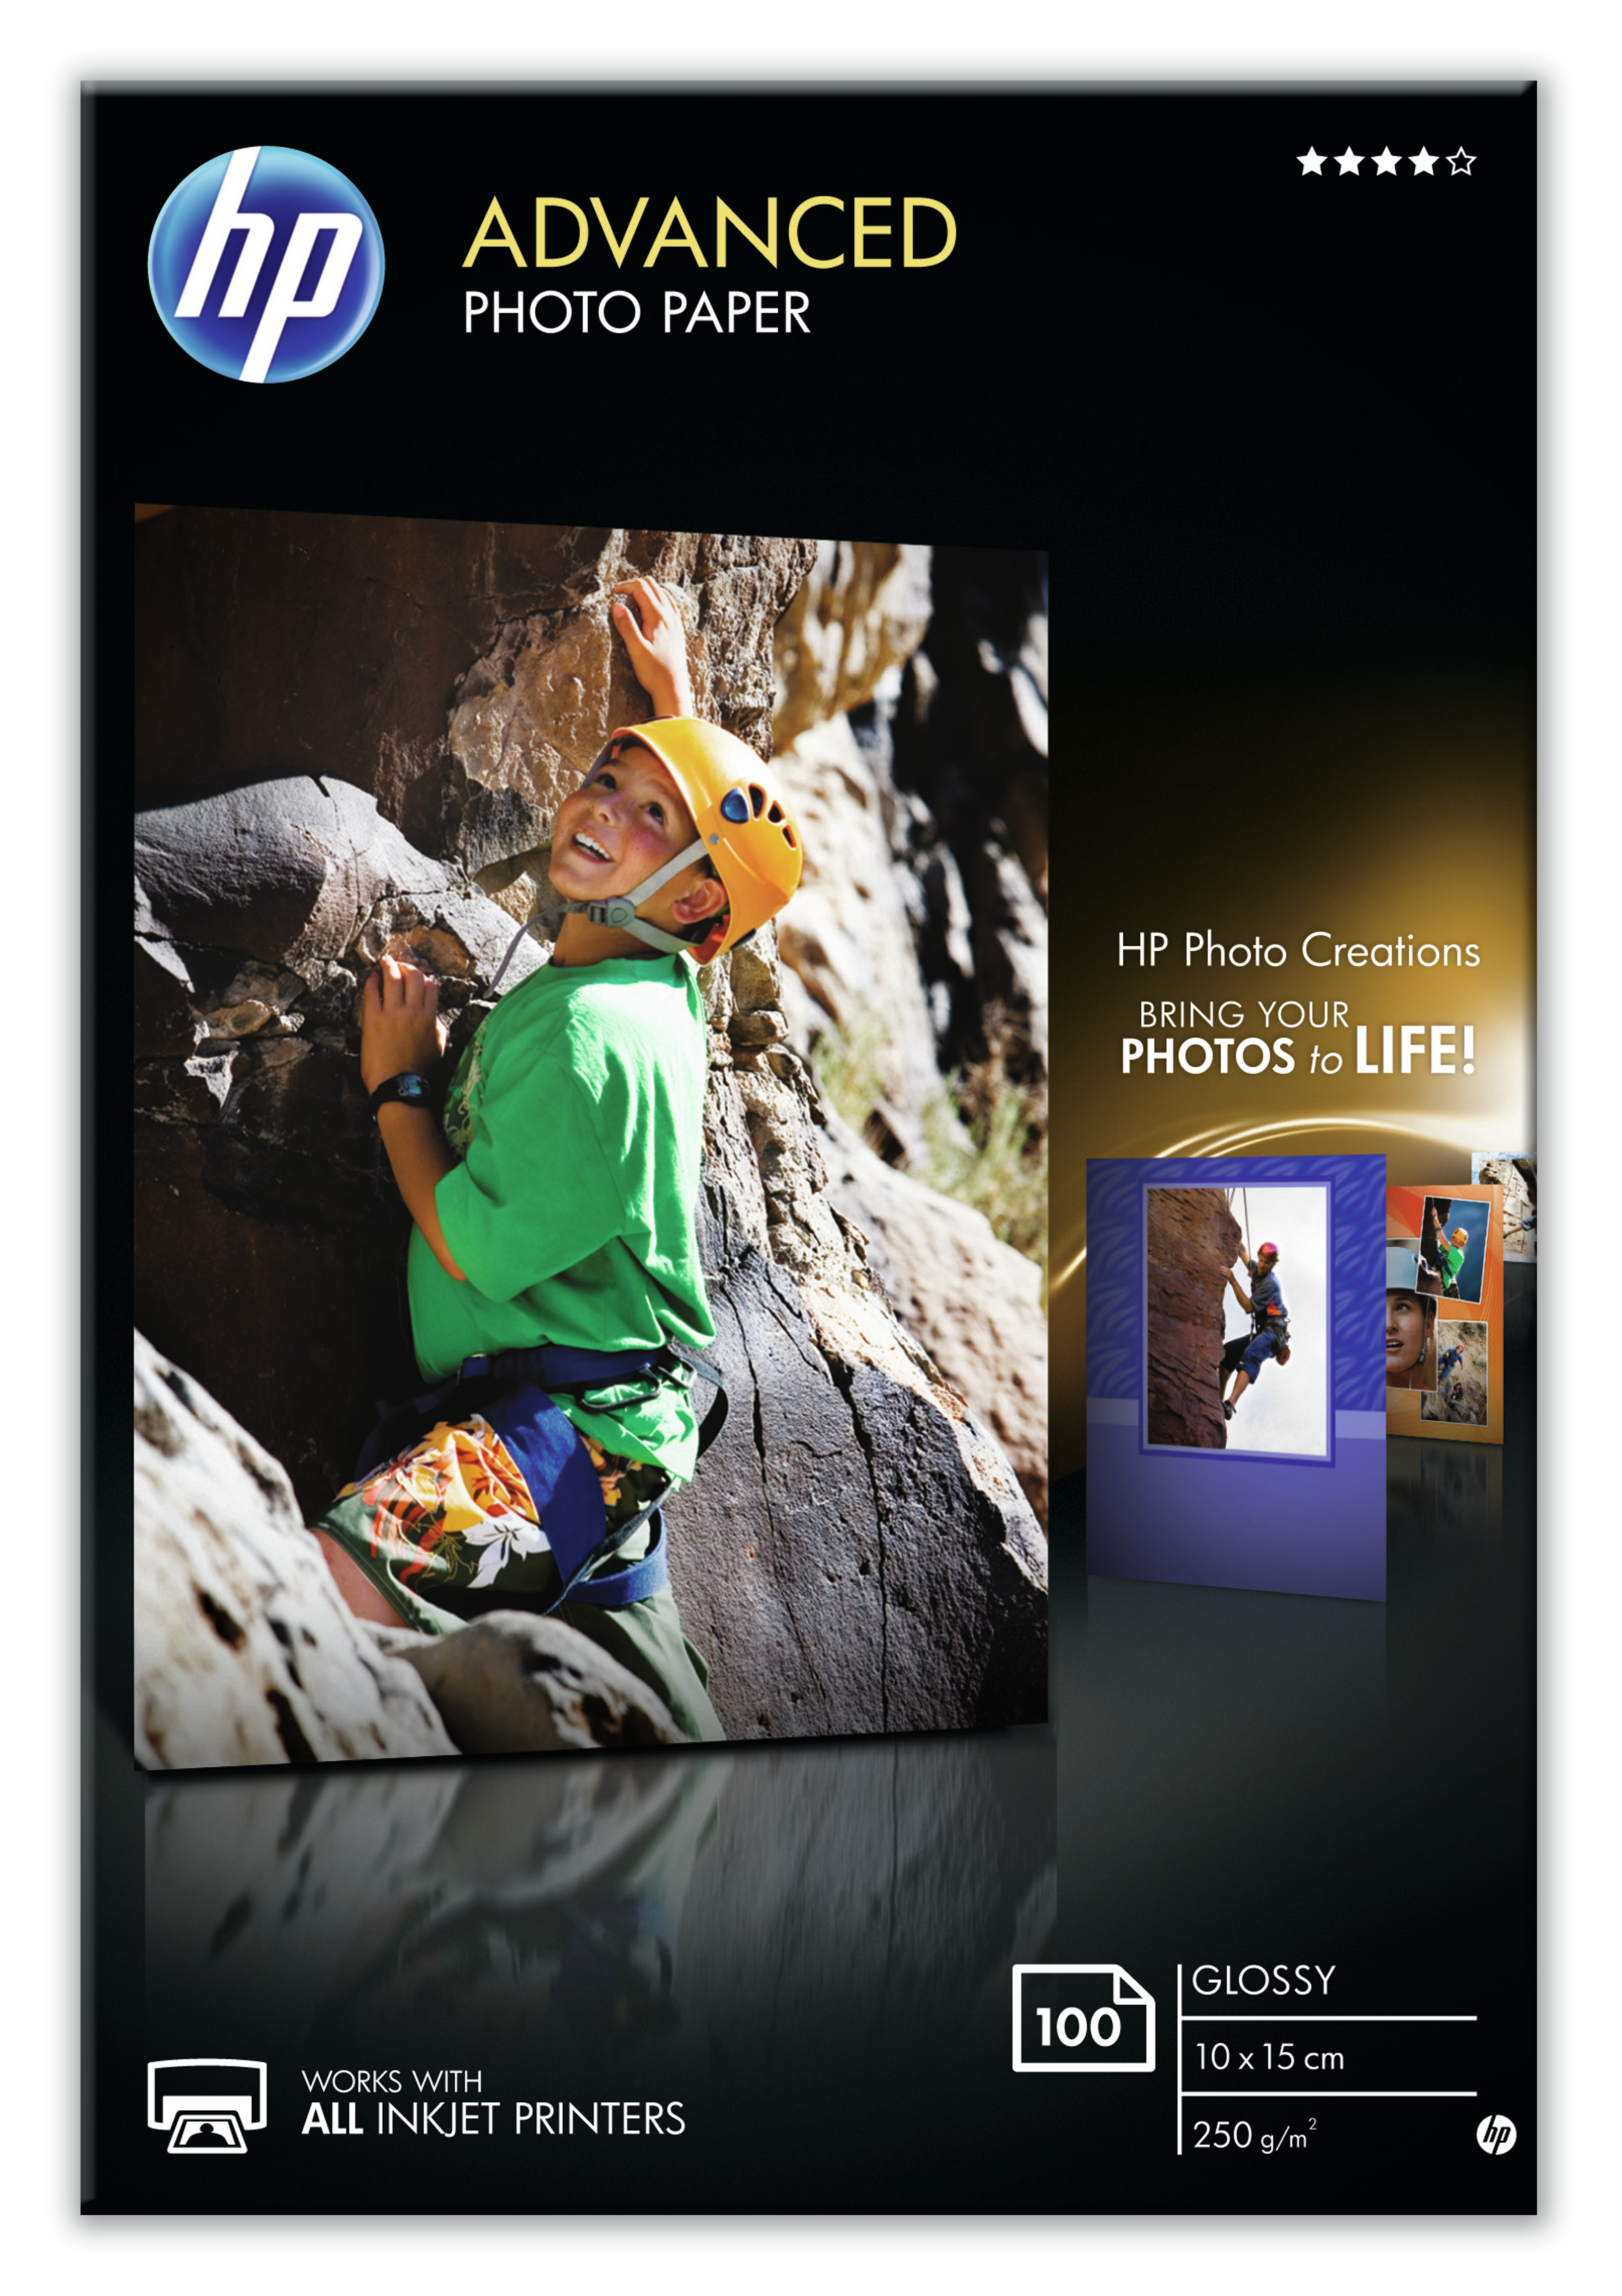 Hpq8692a       Hp Advanced Glossy Photo Paper Hpq8692a                                                     - UF01